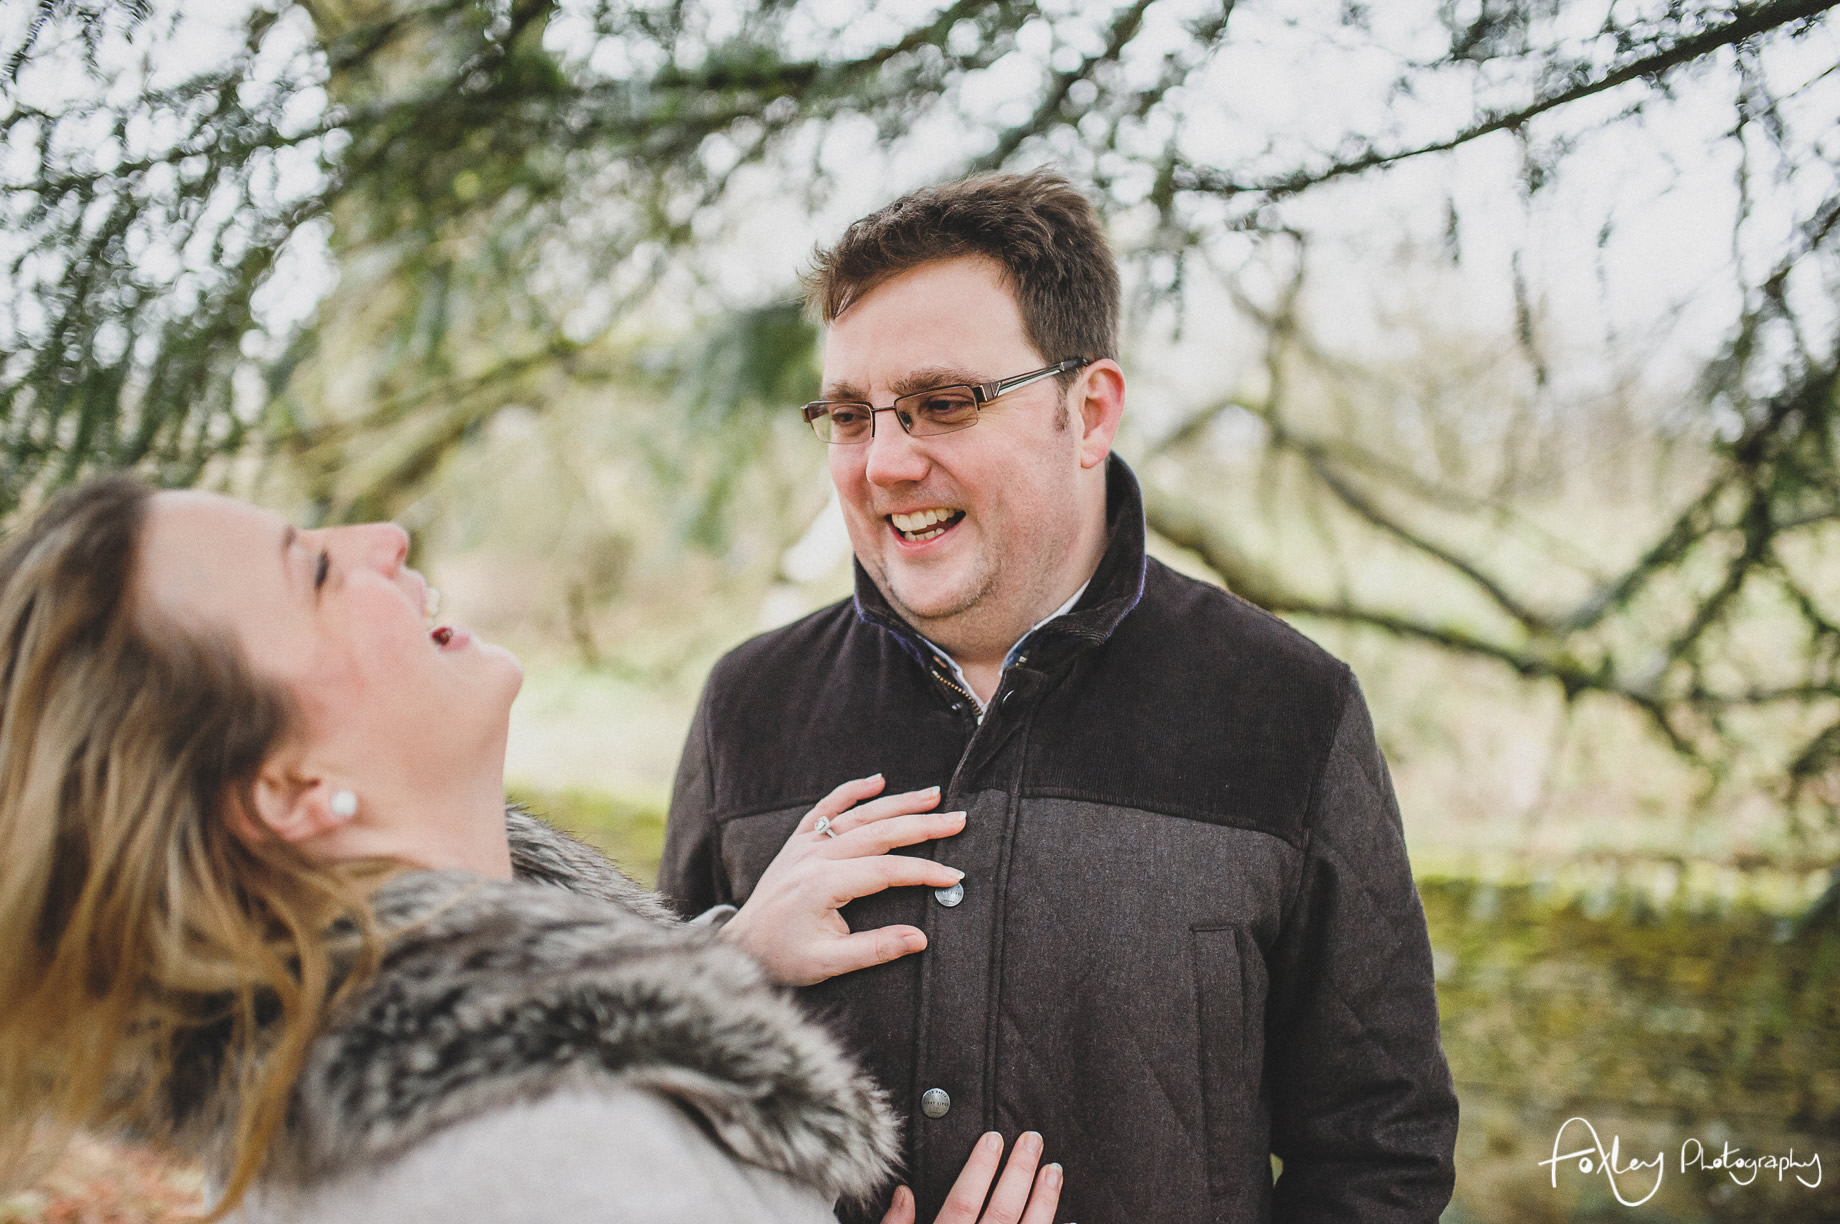 Rebecca and Paul's Pre-Wedding Shoot at Wycoller Country Park 021